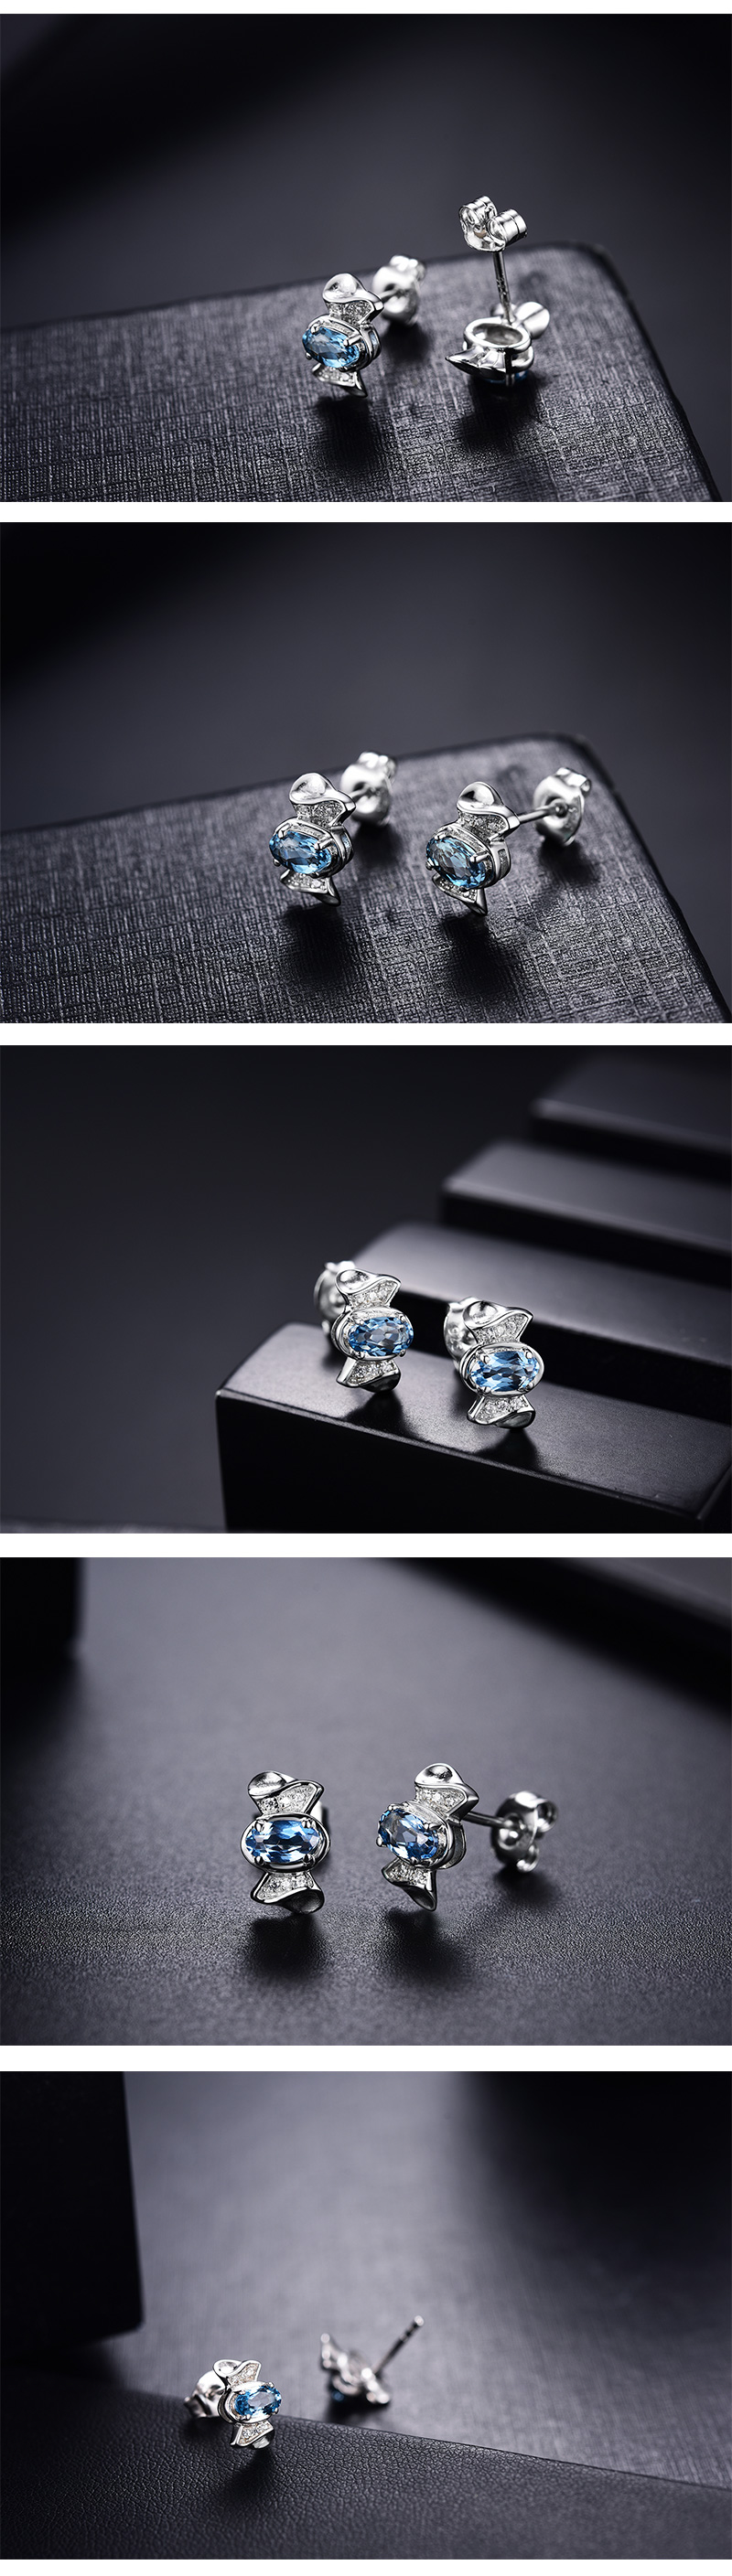 candy simple design 925 sterling silver jewelry with topaz stone rhodium plated ladies earrings